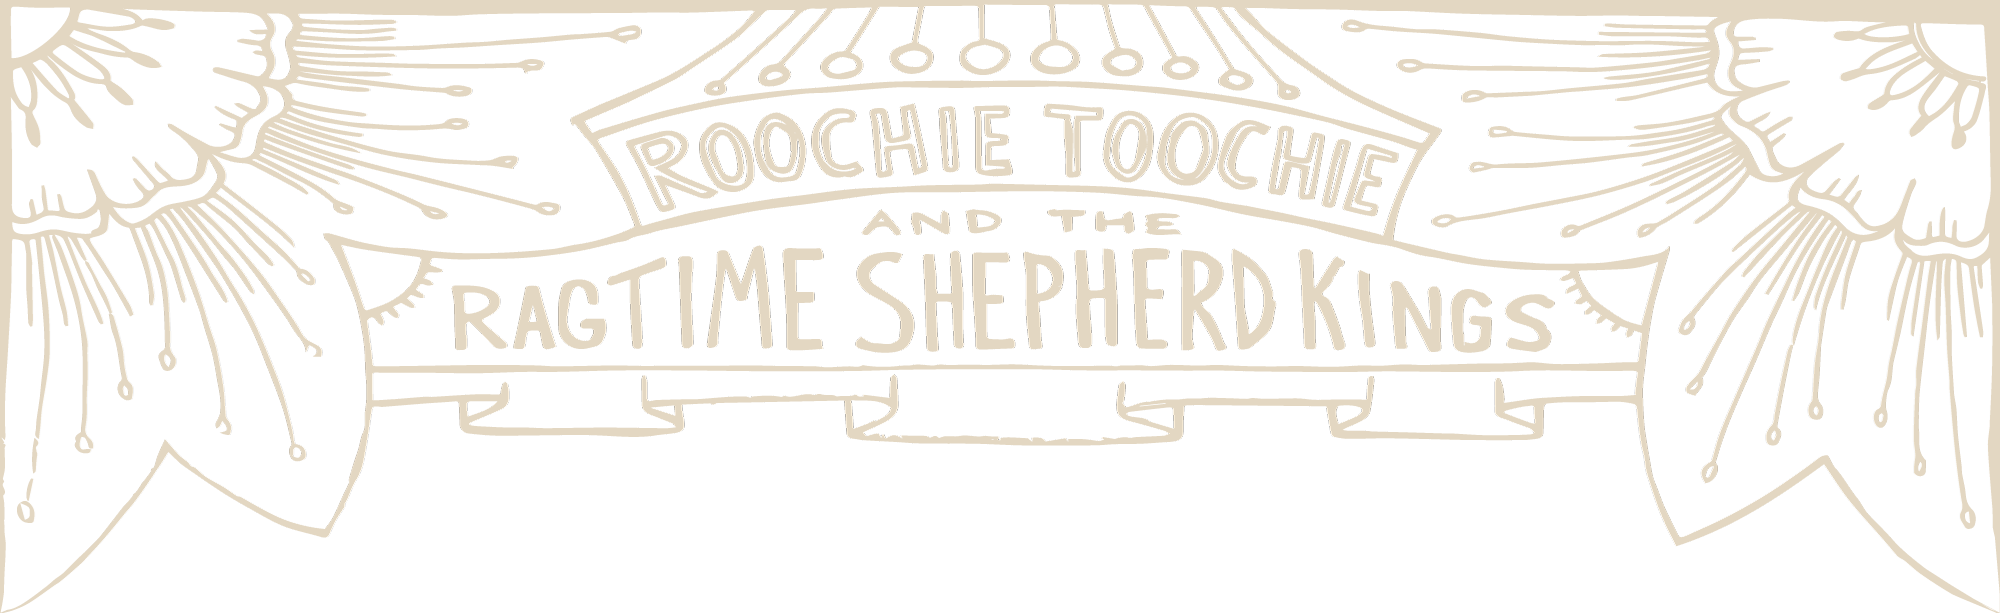 Roochie Toochie and the Ragtime Shepherd Kings